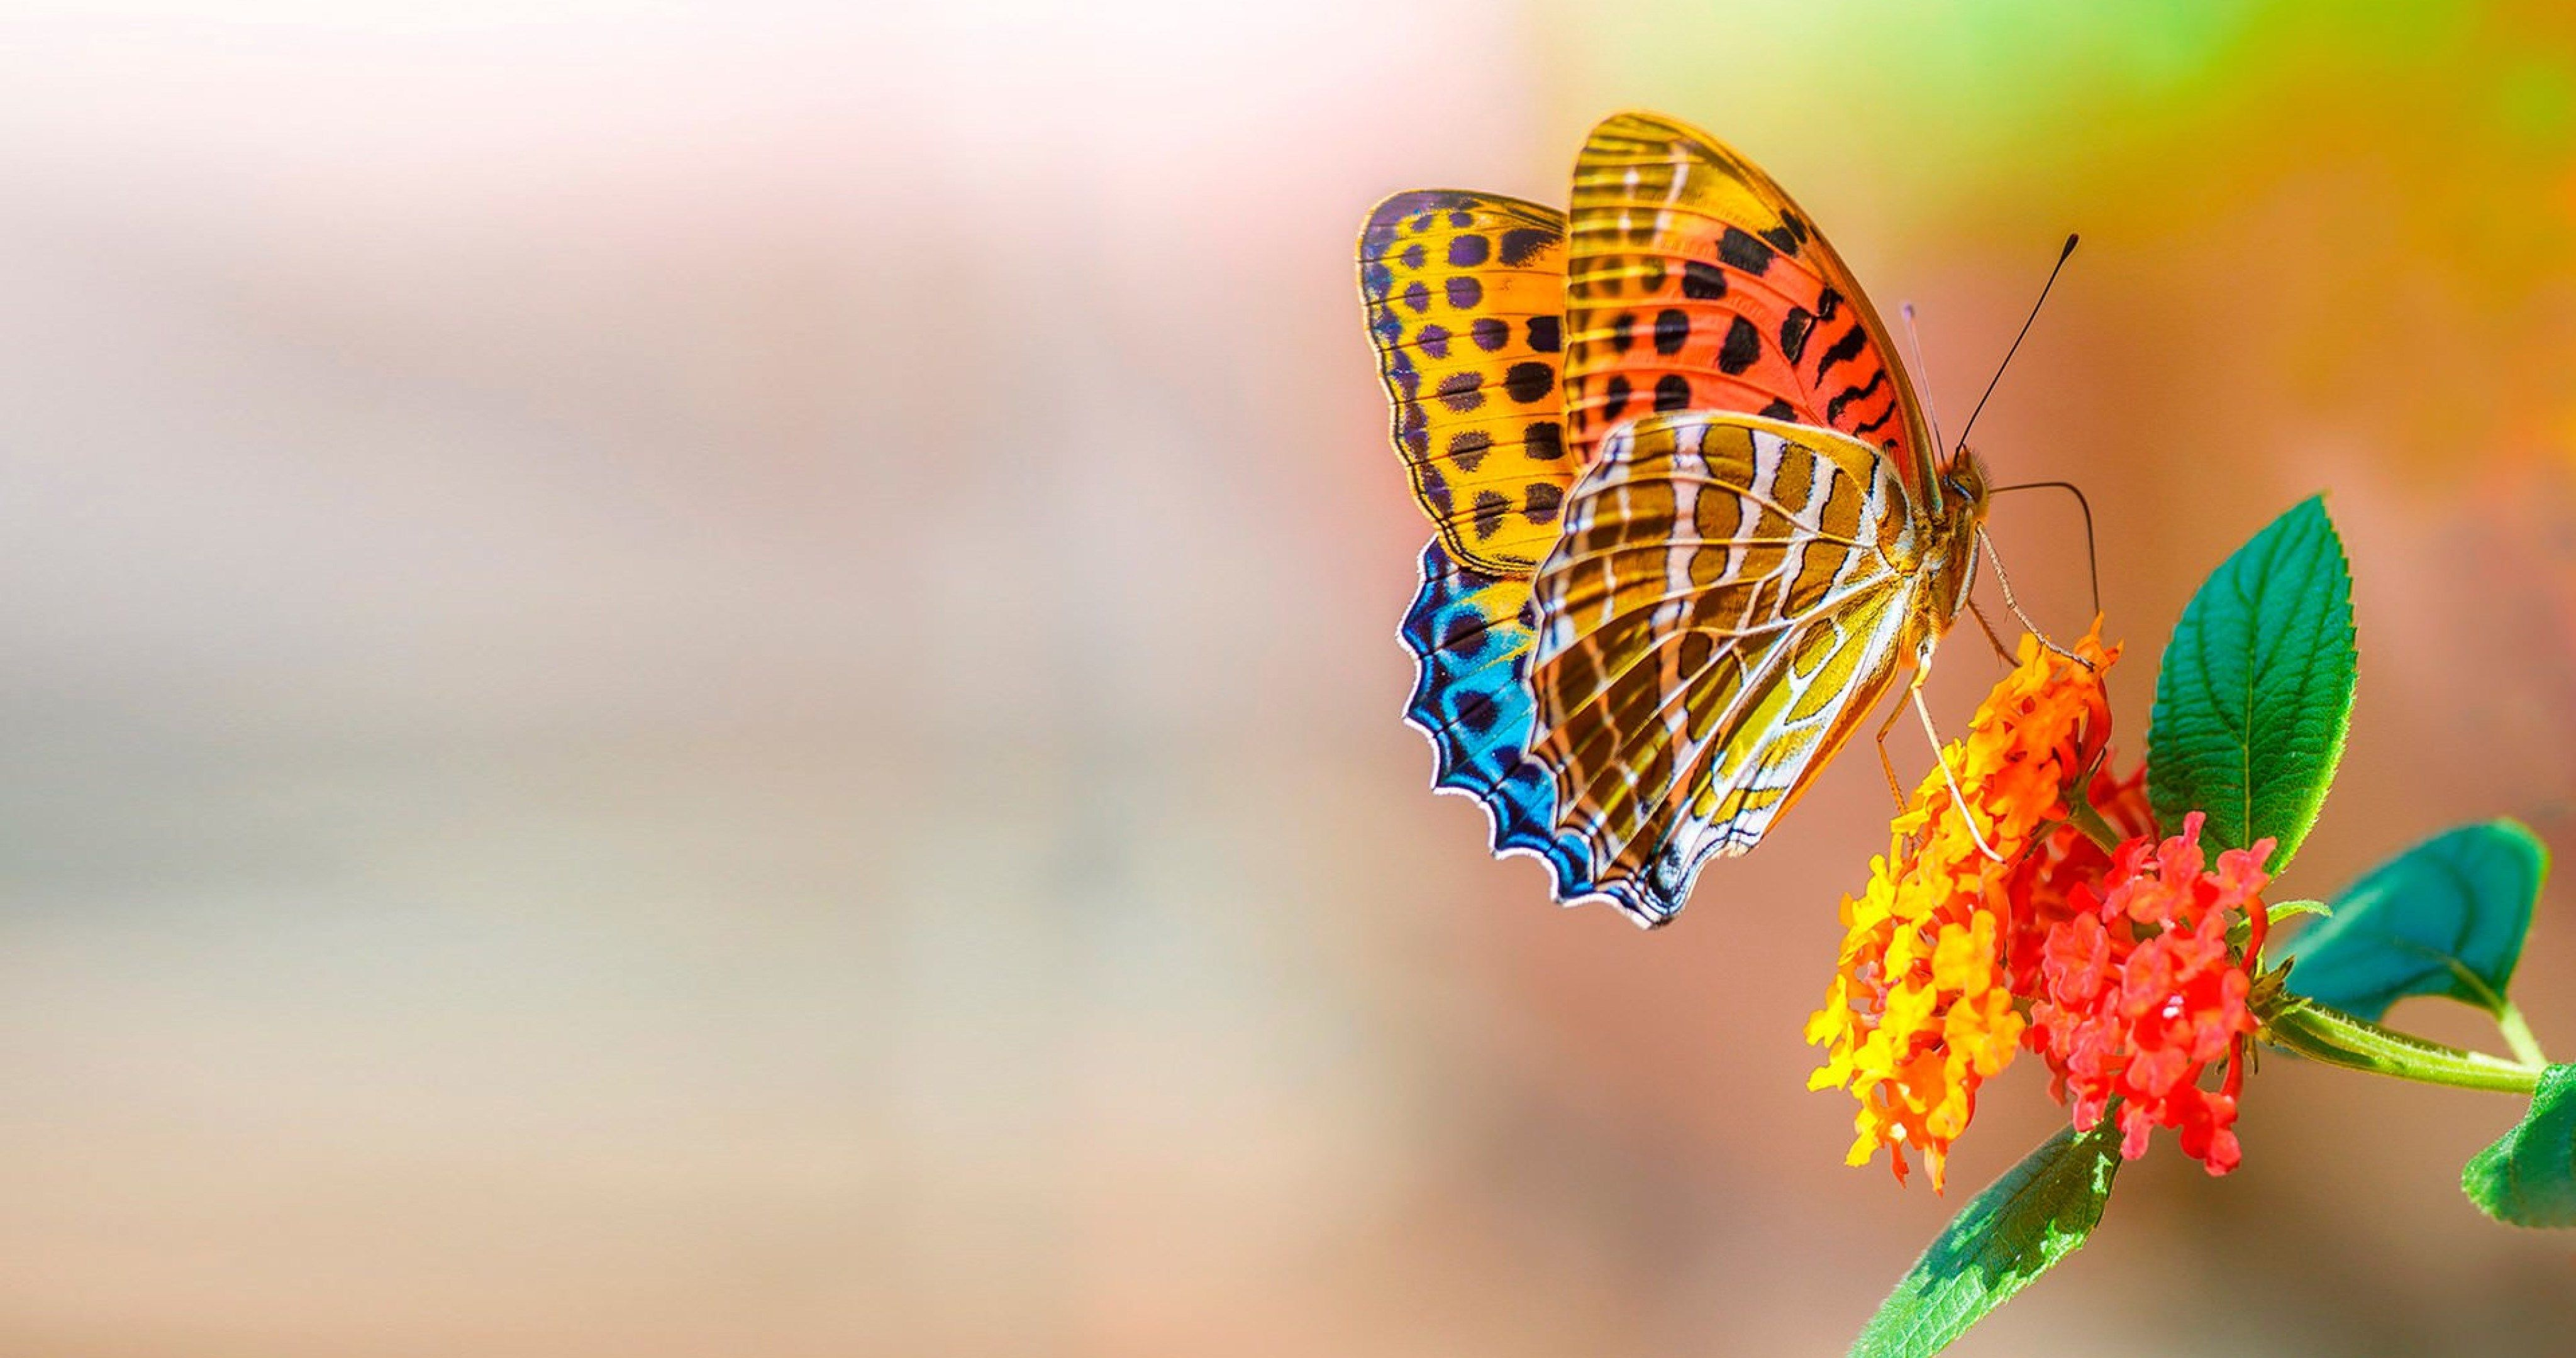 Free Download Butterfly And Flower 4k Ultra Hd Wallpaper Ololoshenka 4096x2160 For Your Desktop Mobile Tablet Explore 27 Butterfly 4k Wallpapers Butterfly 4k Wallpapers Butterfly Wallpaper Butterfly Backgrounds